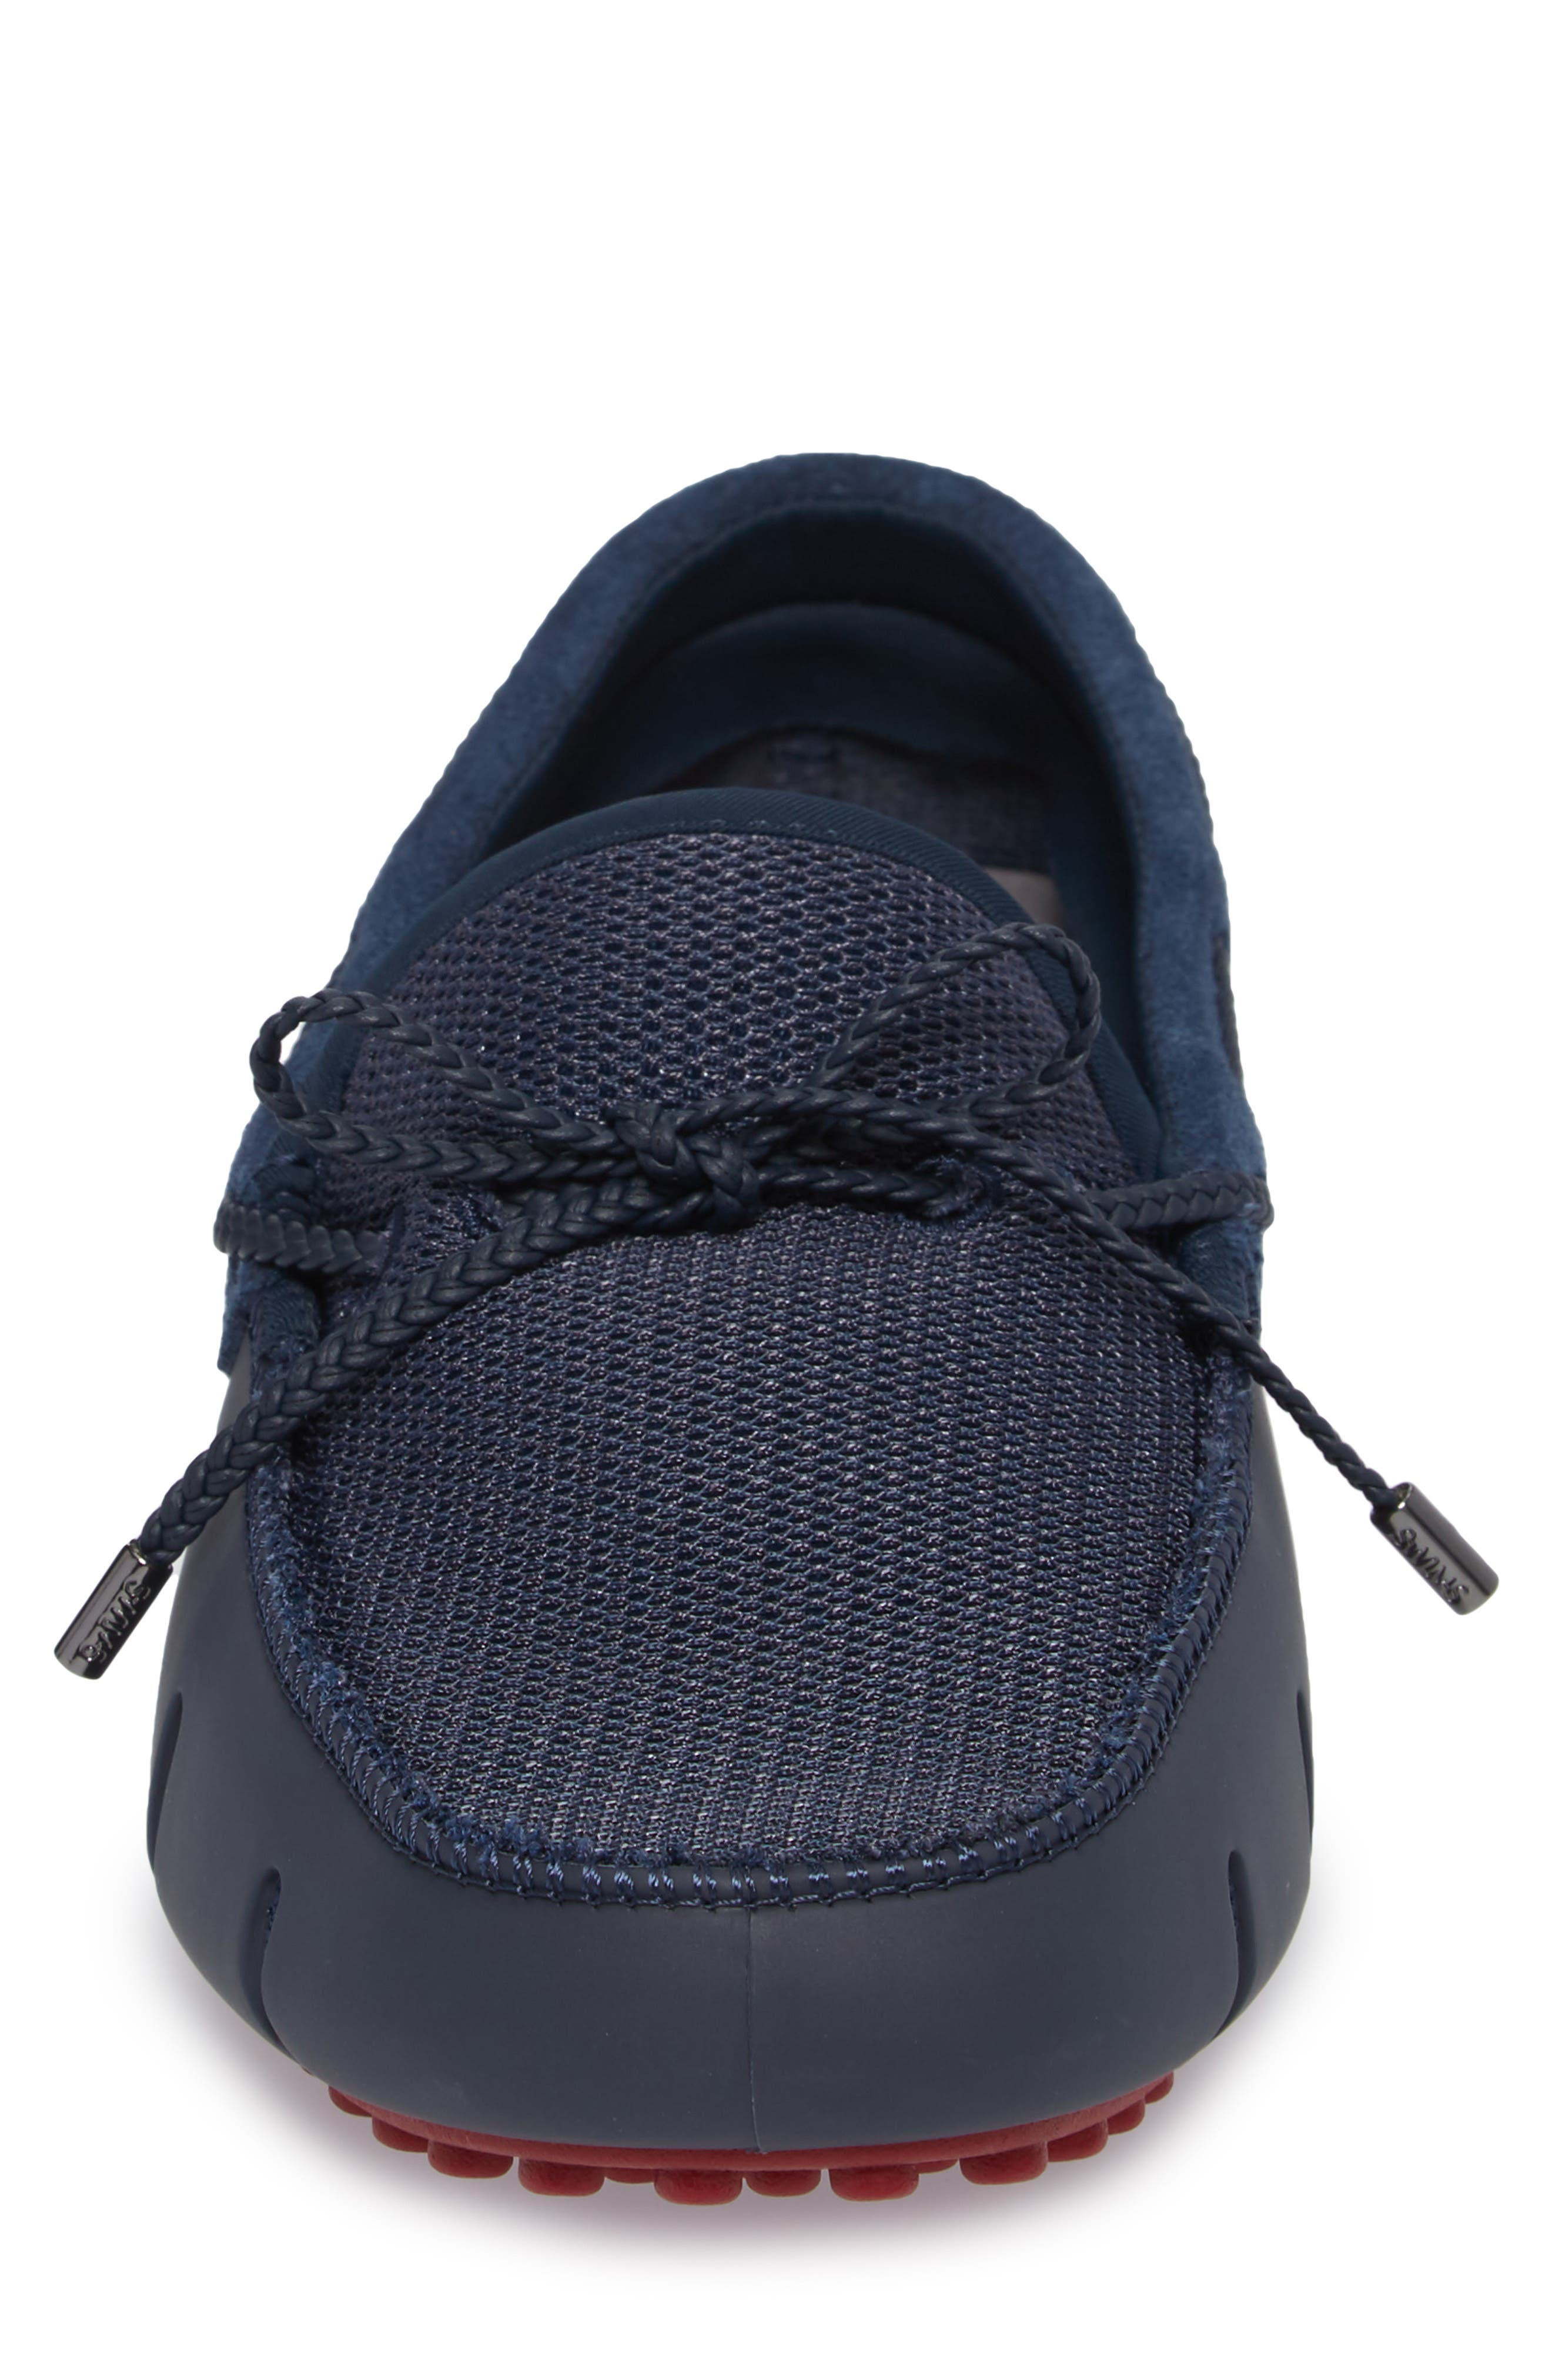 Driving Shoe,                             Alternate thumbnail 4, color,                             Navy / Deep Red